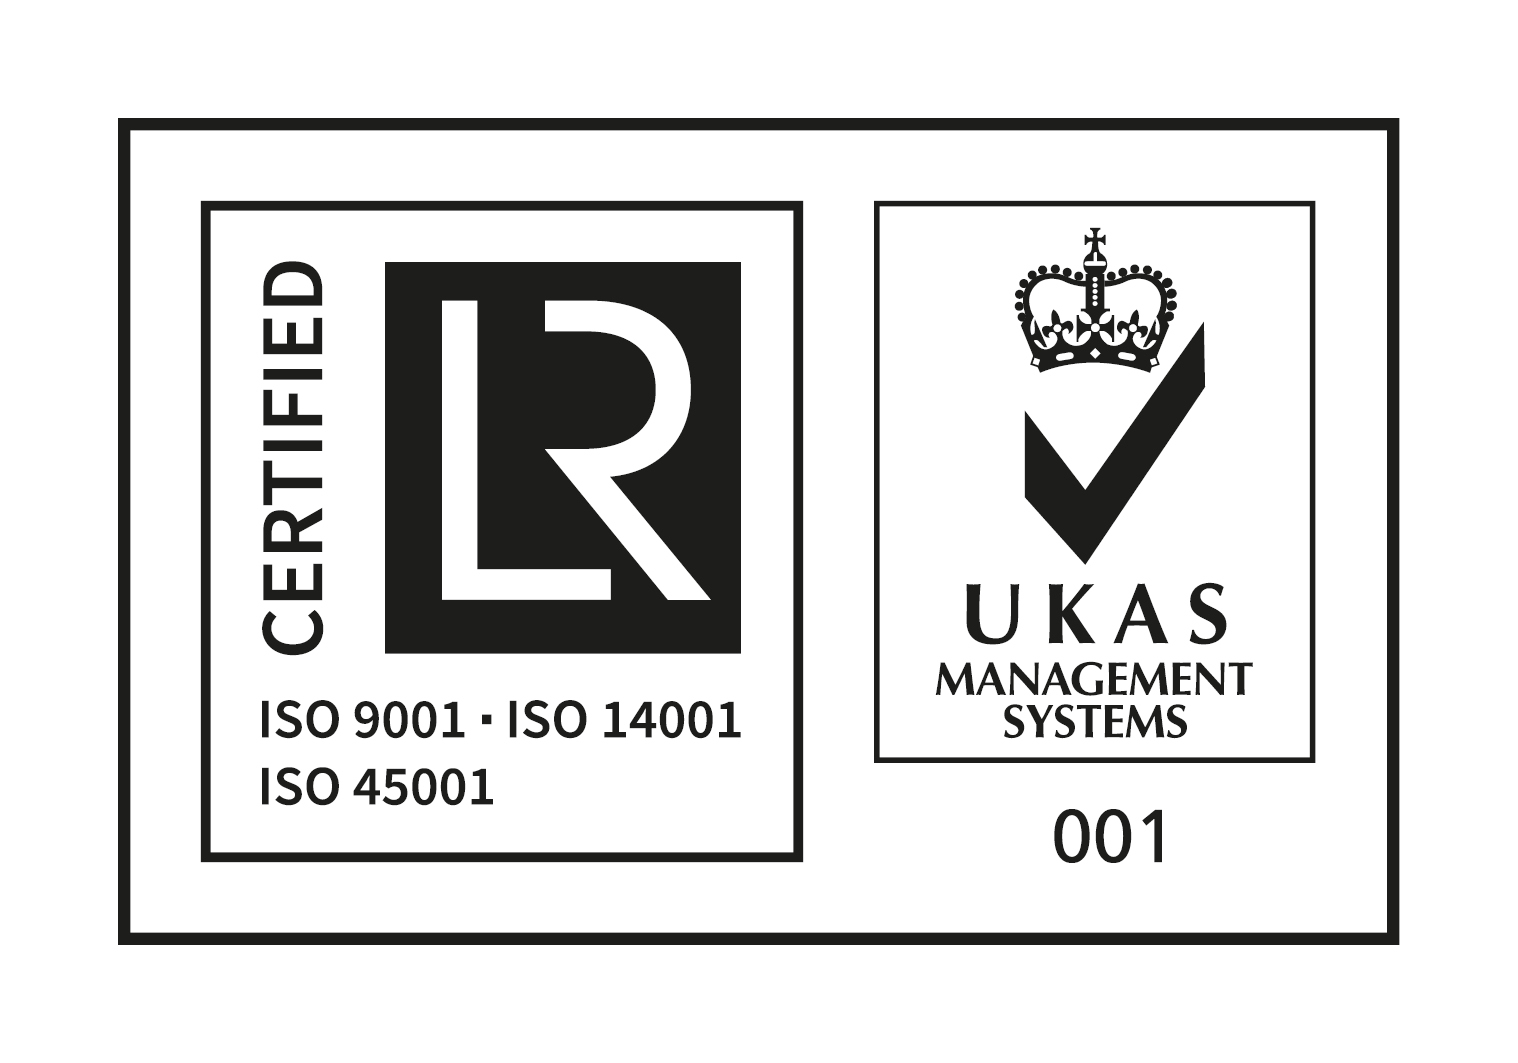 UKAS AND ISO 9001 - ISO 14001 - ISO 45001-RGB.jpg